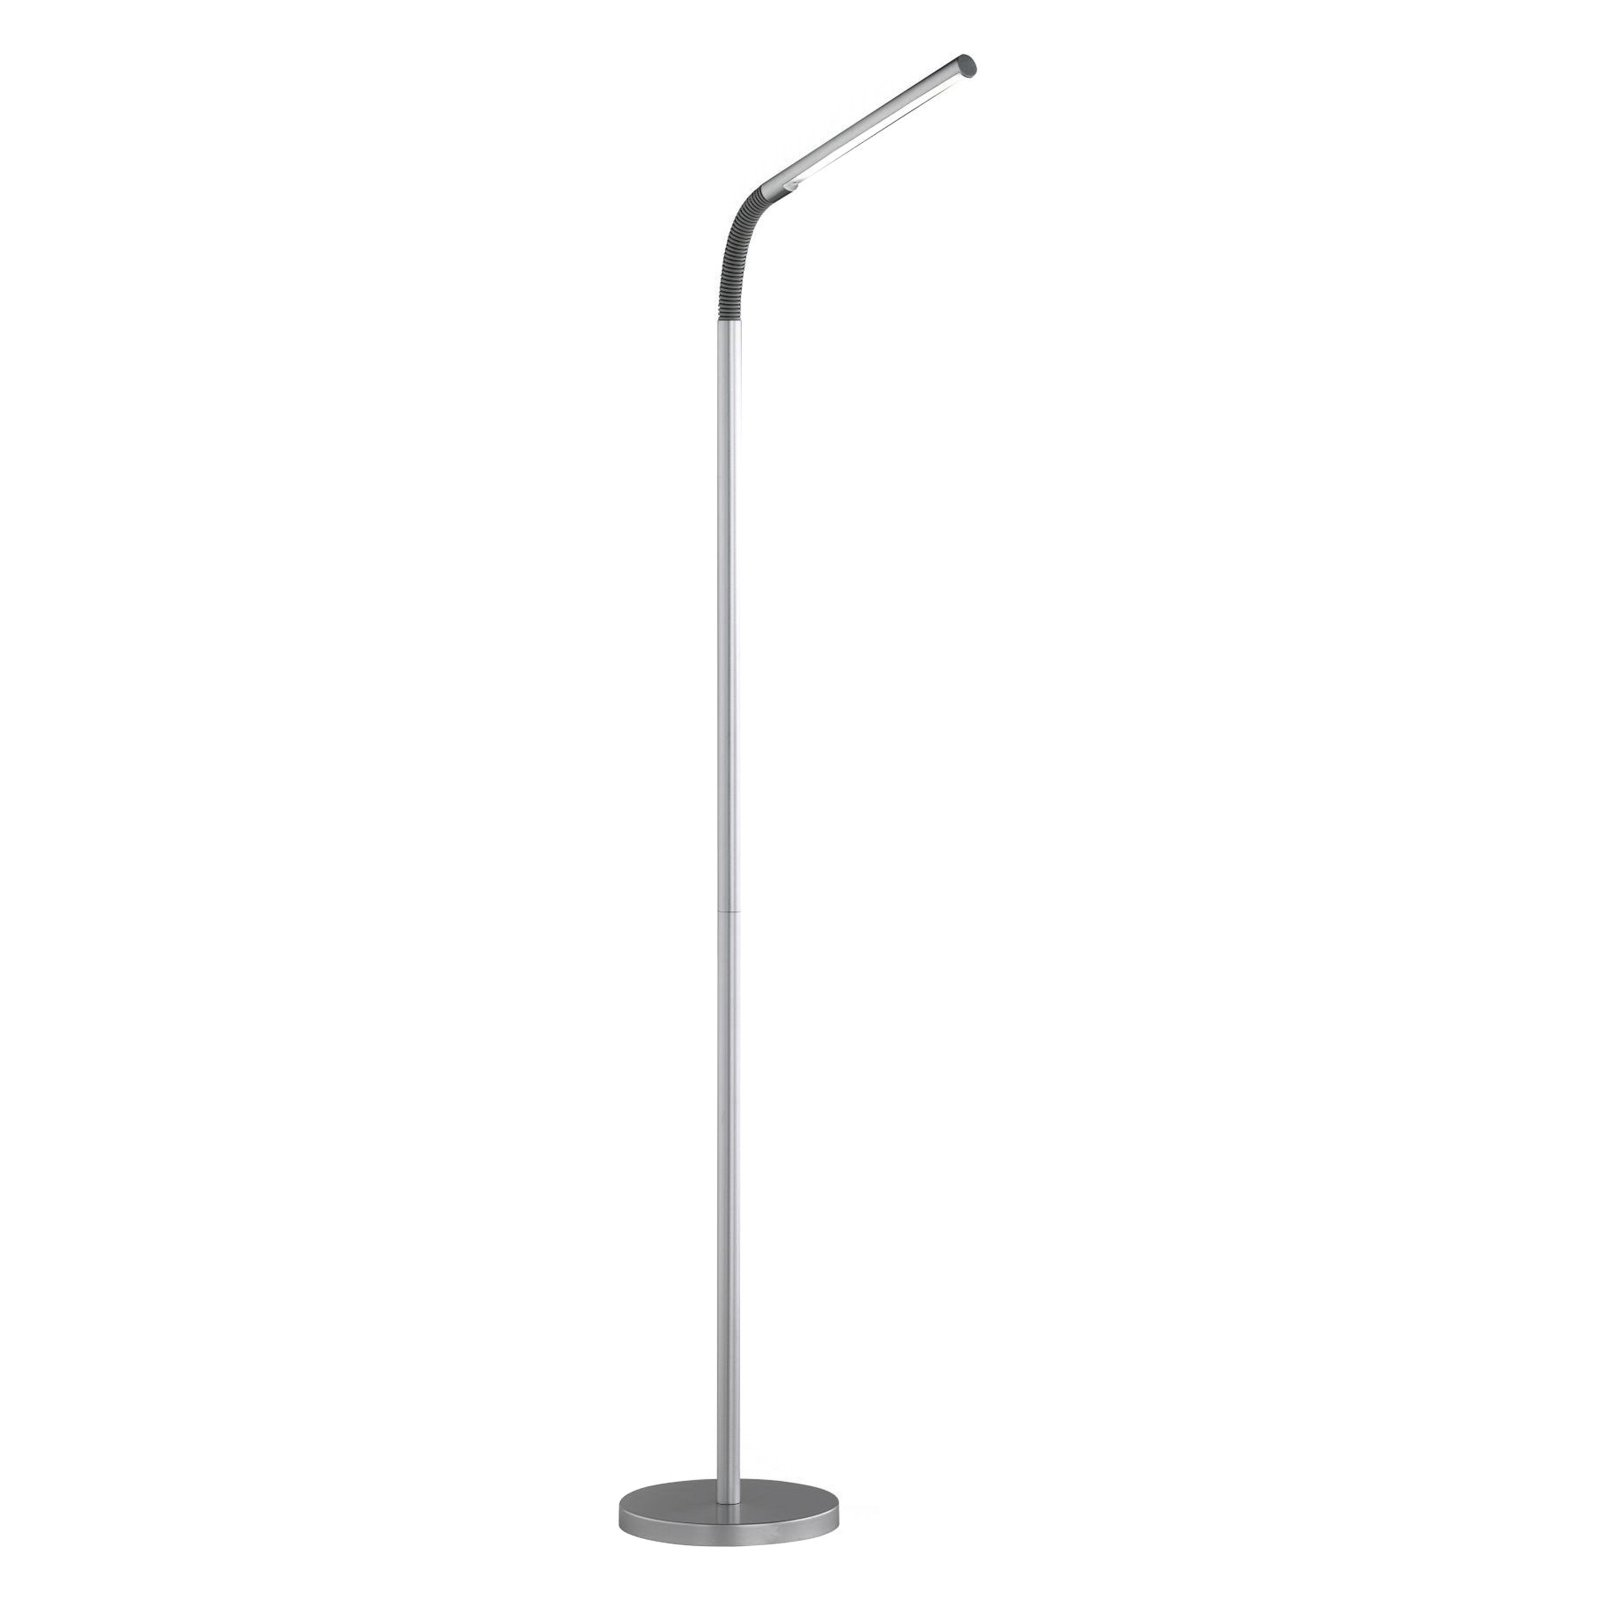 LED Floor Lamp, Silver, Energy Saving, Light Source for reading or Computer use. Product... by Generic